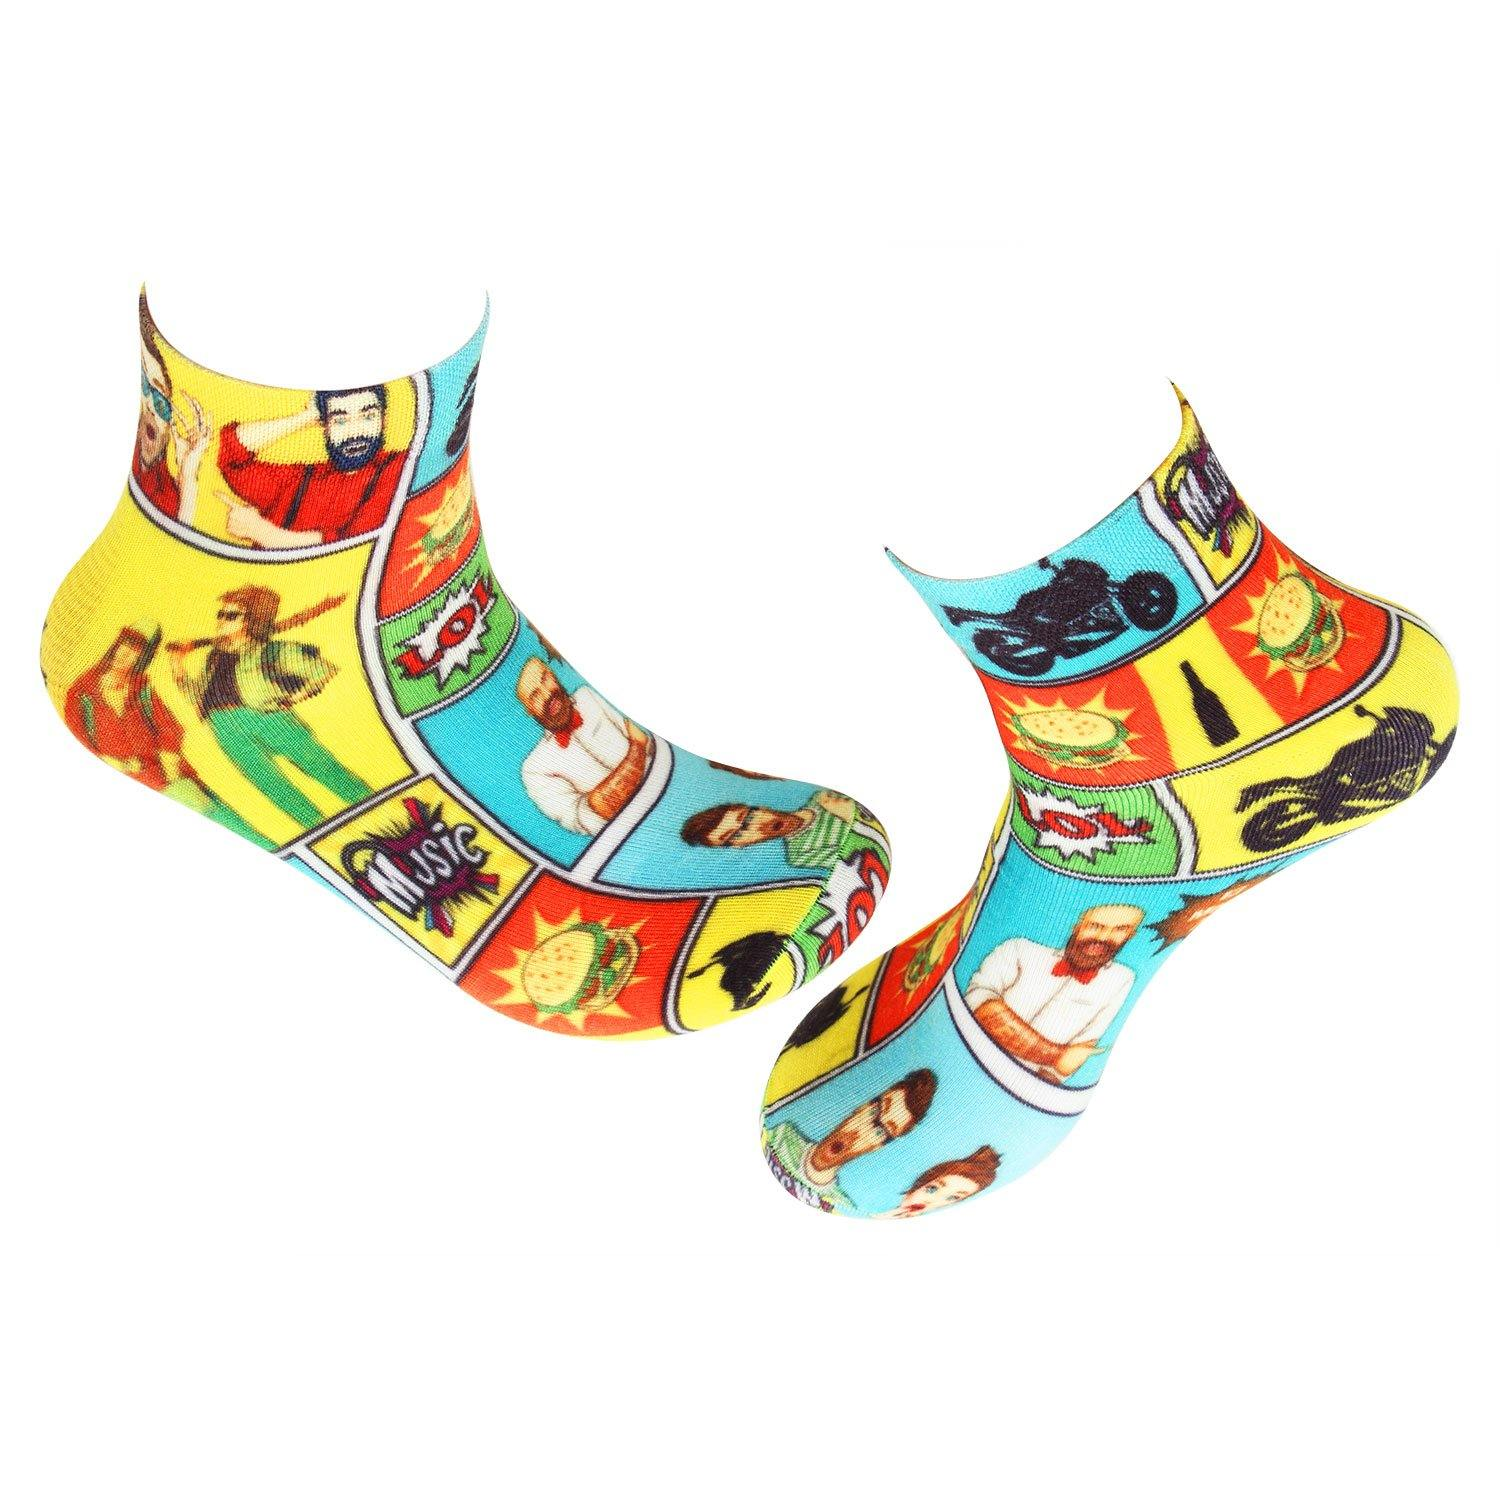 Limited Edition Fashion Socks For Men - Pack Of 2